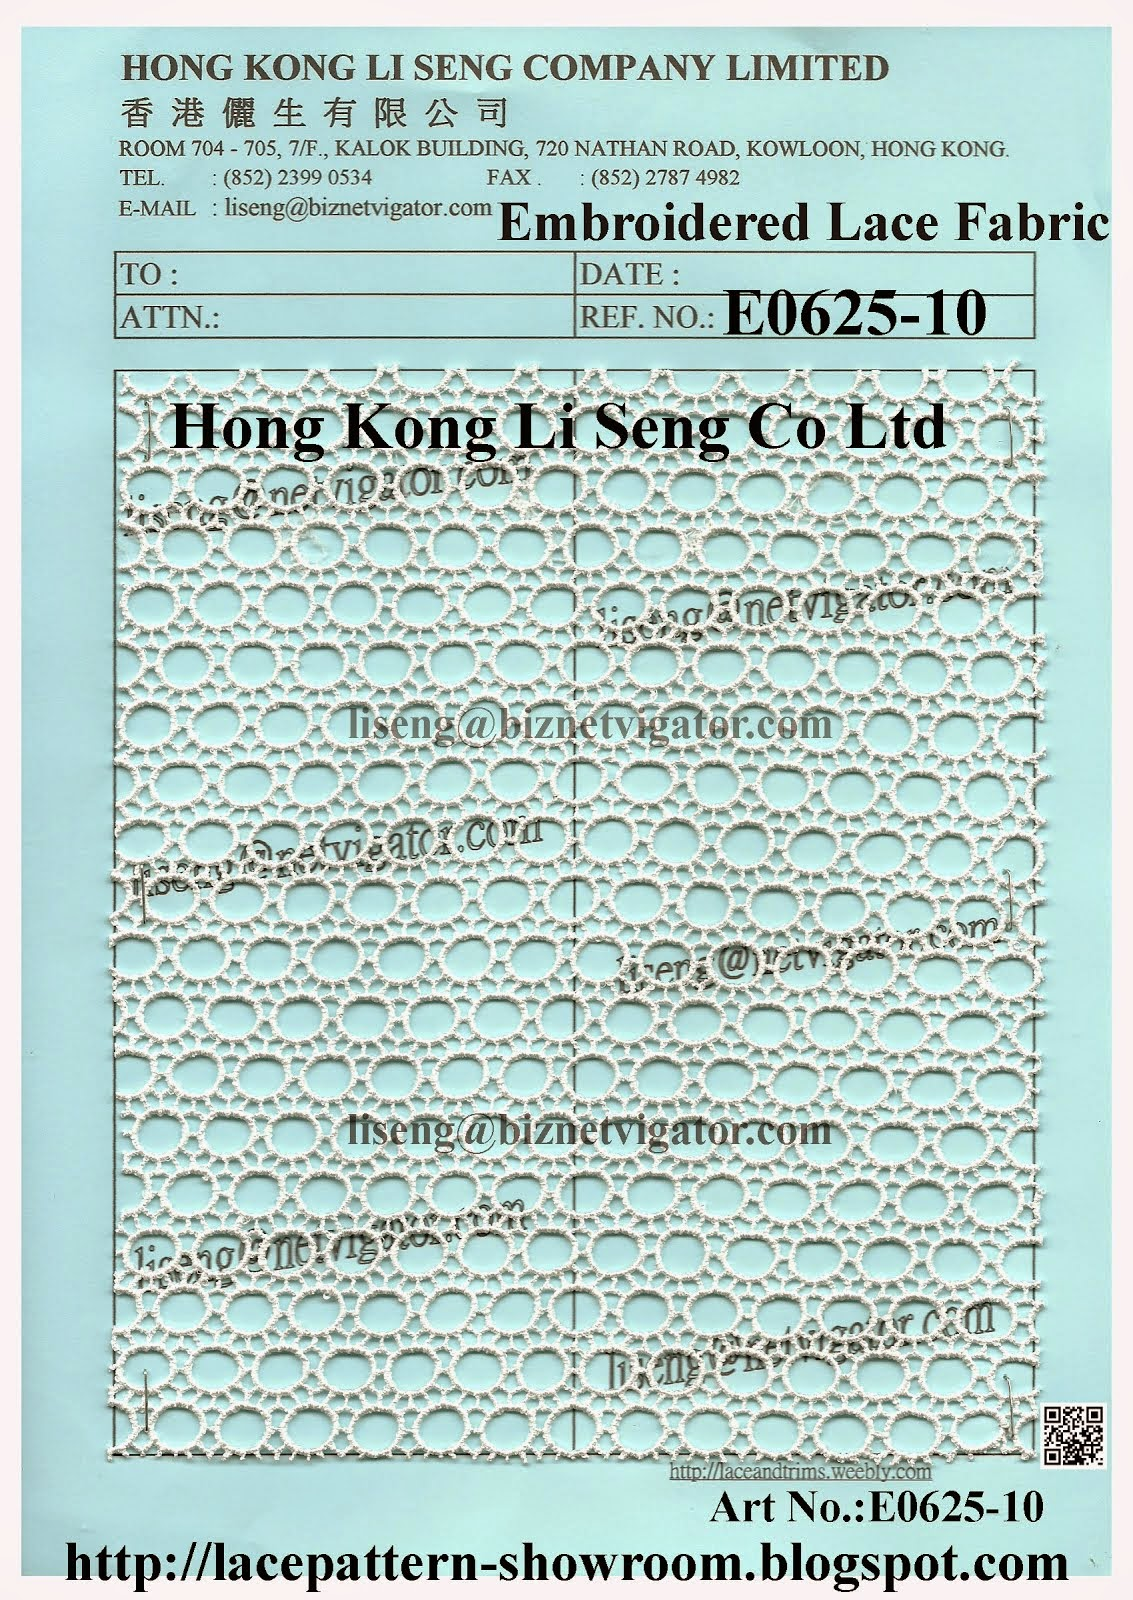 New Embroidered Lace Fabric Manufacturers Wholesale Supplier - Hong Kong Li Seng Co Ltd